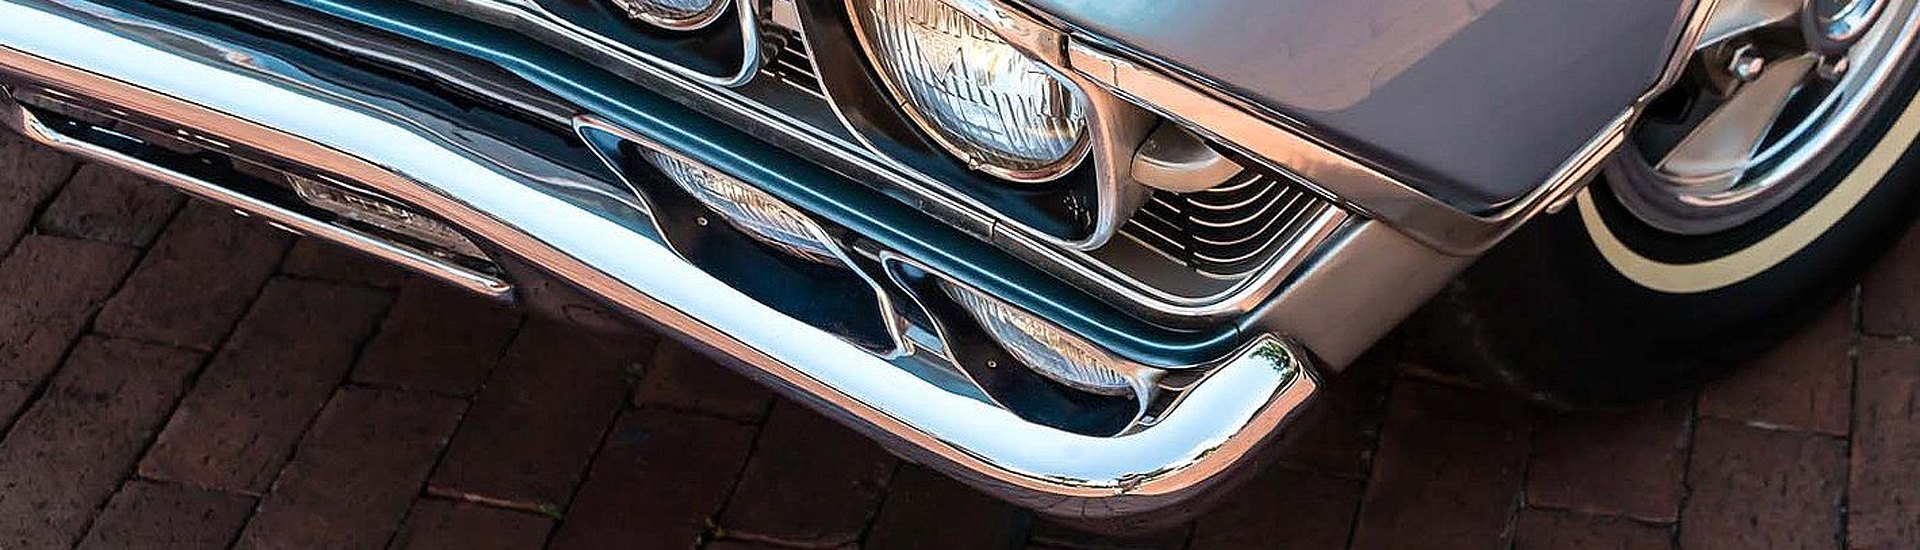 Chrome Bumpers: The Good Old Days When Bumpers Were Metal